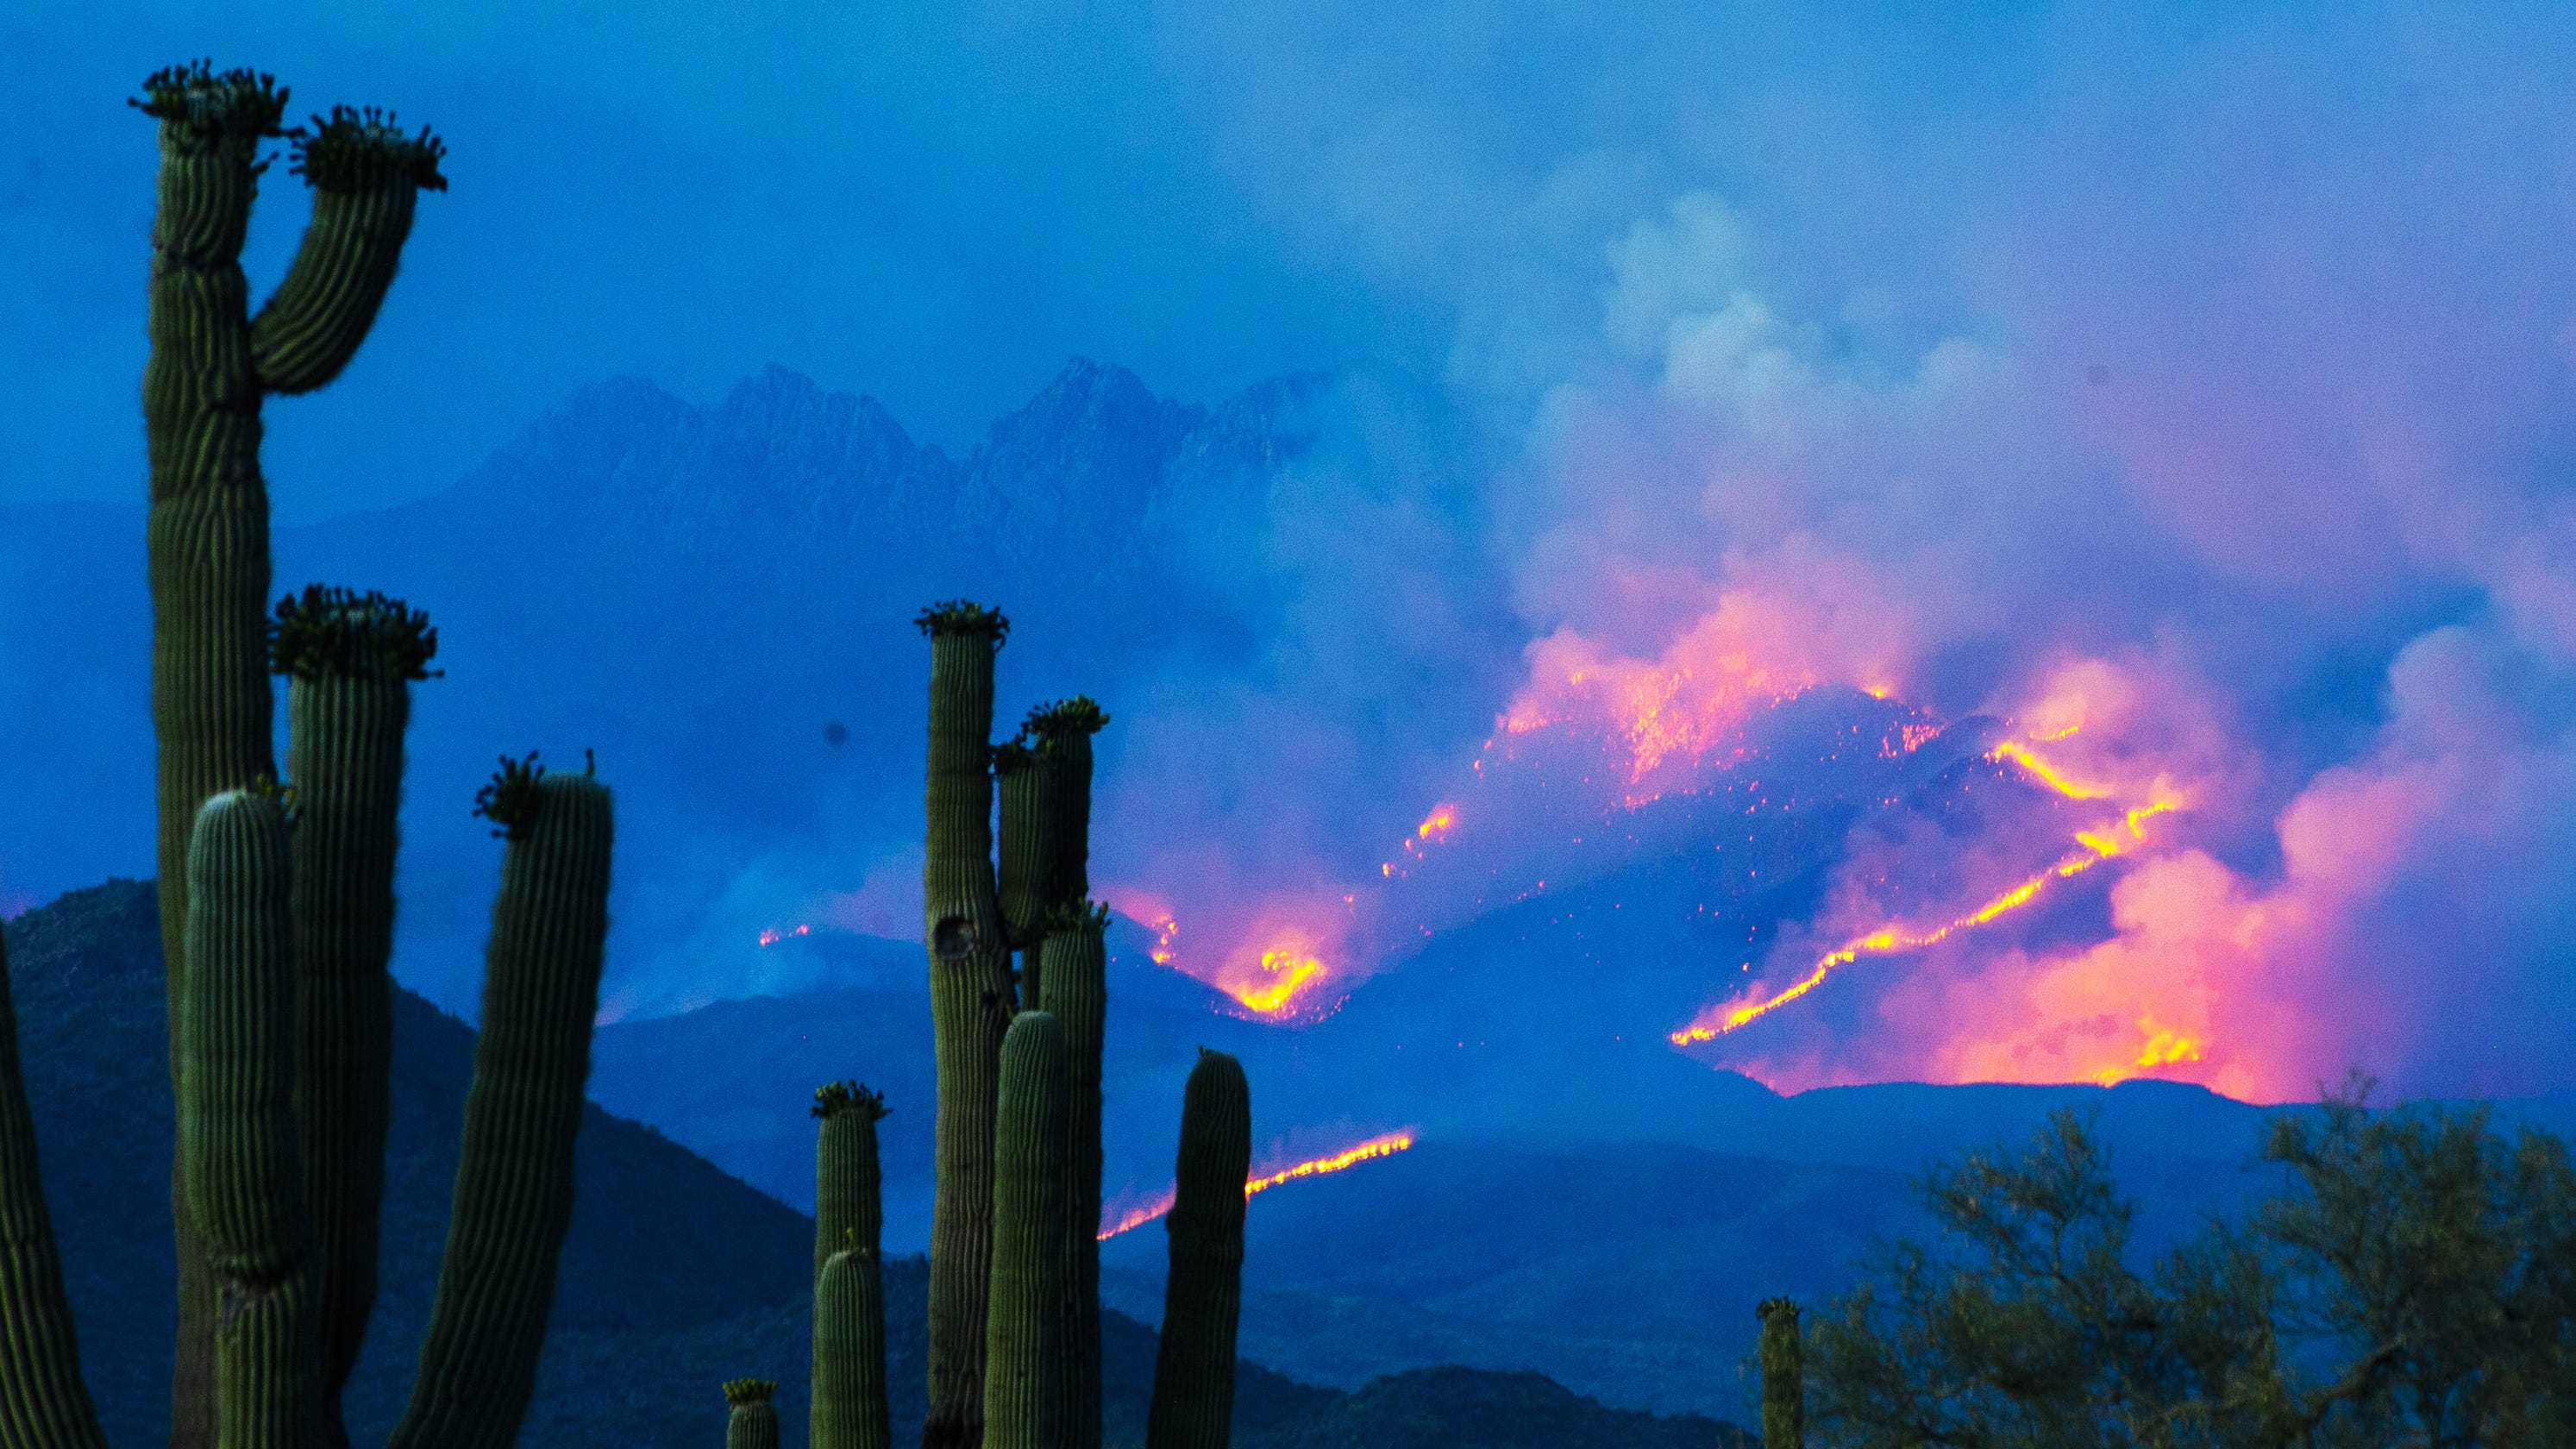 As Bush Fire becomes one of largest in Arizona history, water and wildlife at risk